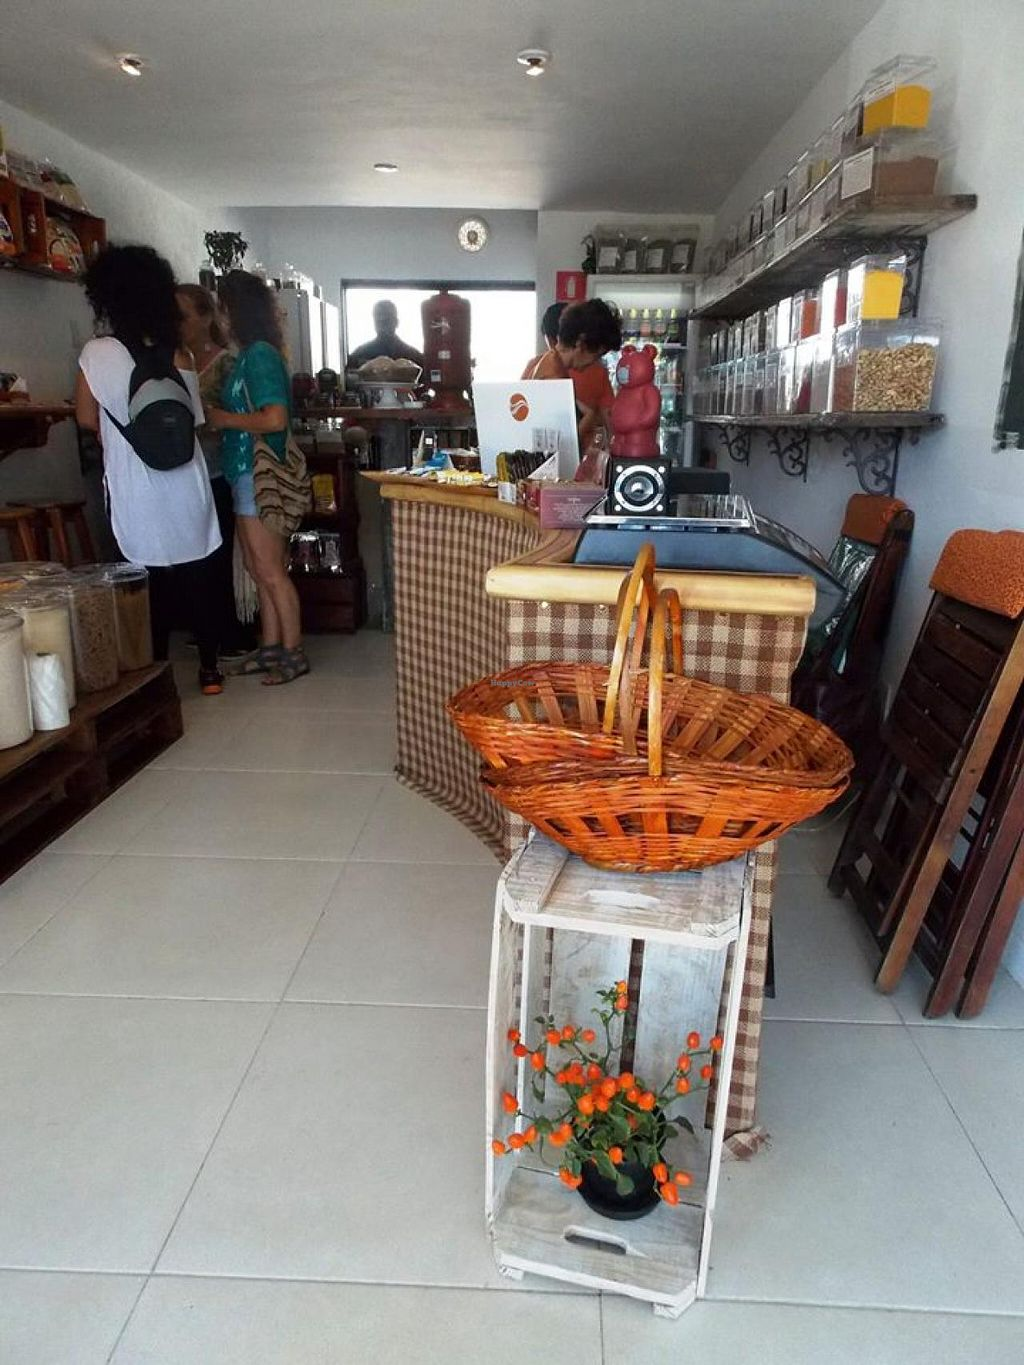 """Photo of Grao Alimentos Saudaveis  by <a href=""""/members/profile/community"""">community</a> <br/>Grao Alimentos Saudaveis <br/> March 31, 2015  - <a href='/contact/abuse/image/57039/97481'>Report</a>"""